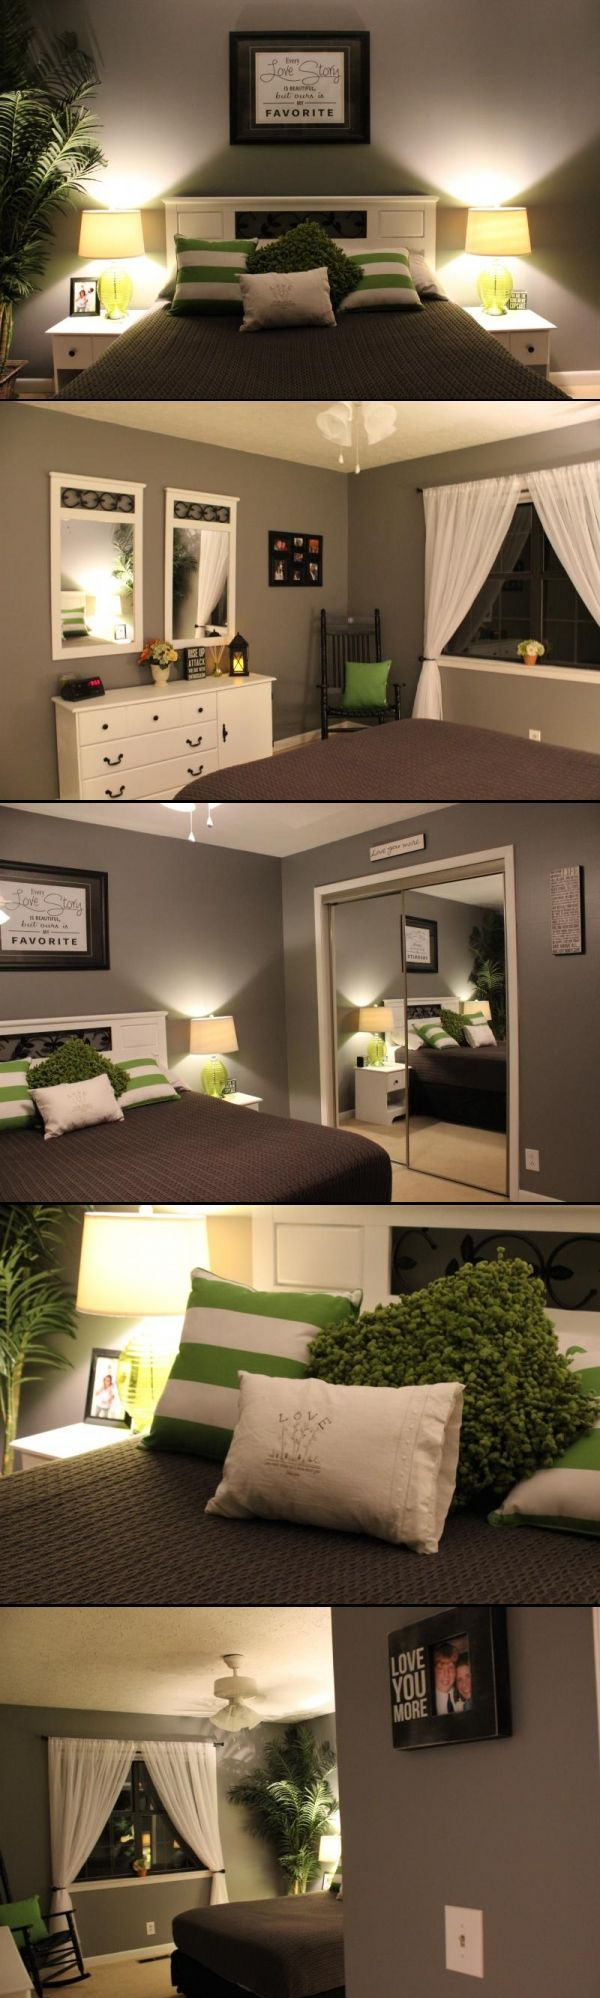 Gray And Green Bedroom I Like The Color Scheme Bedroom Green